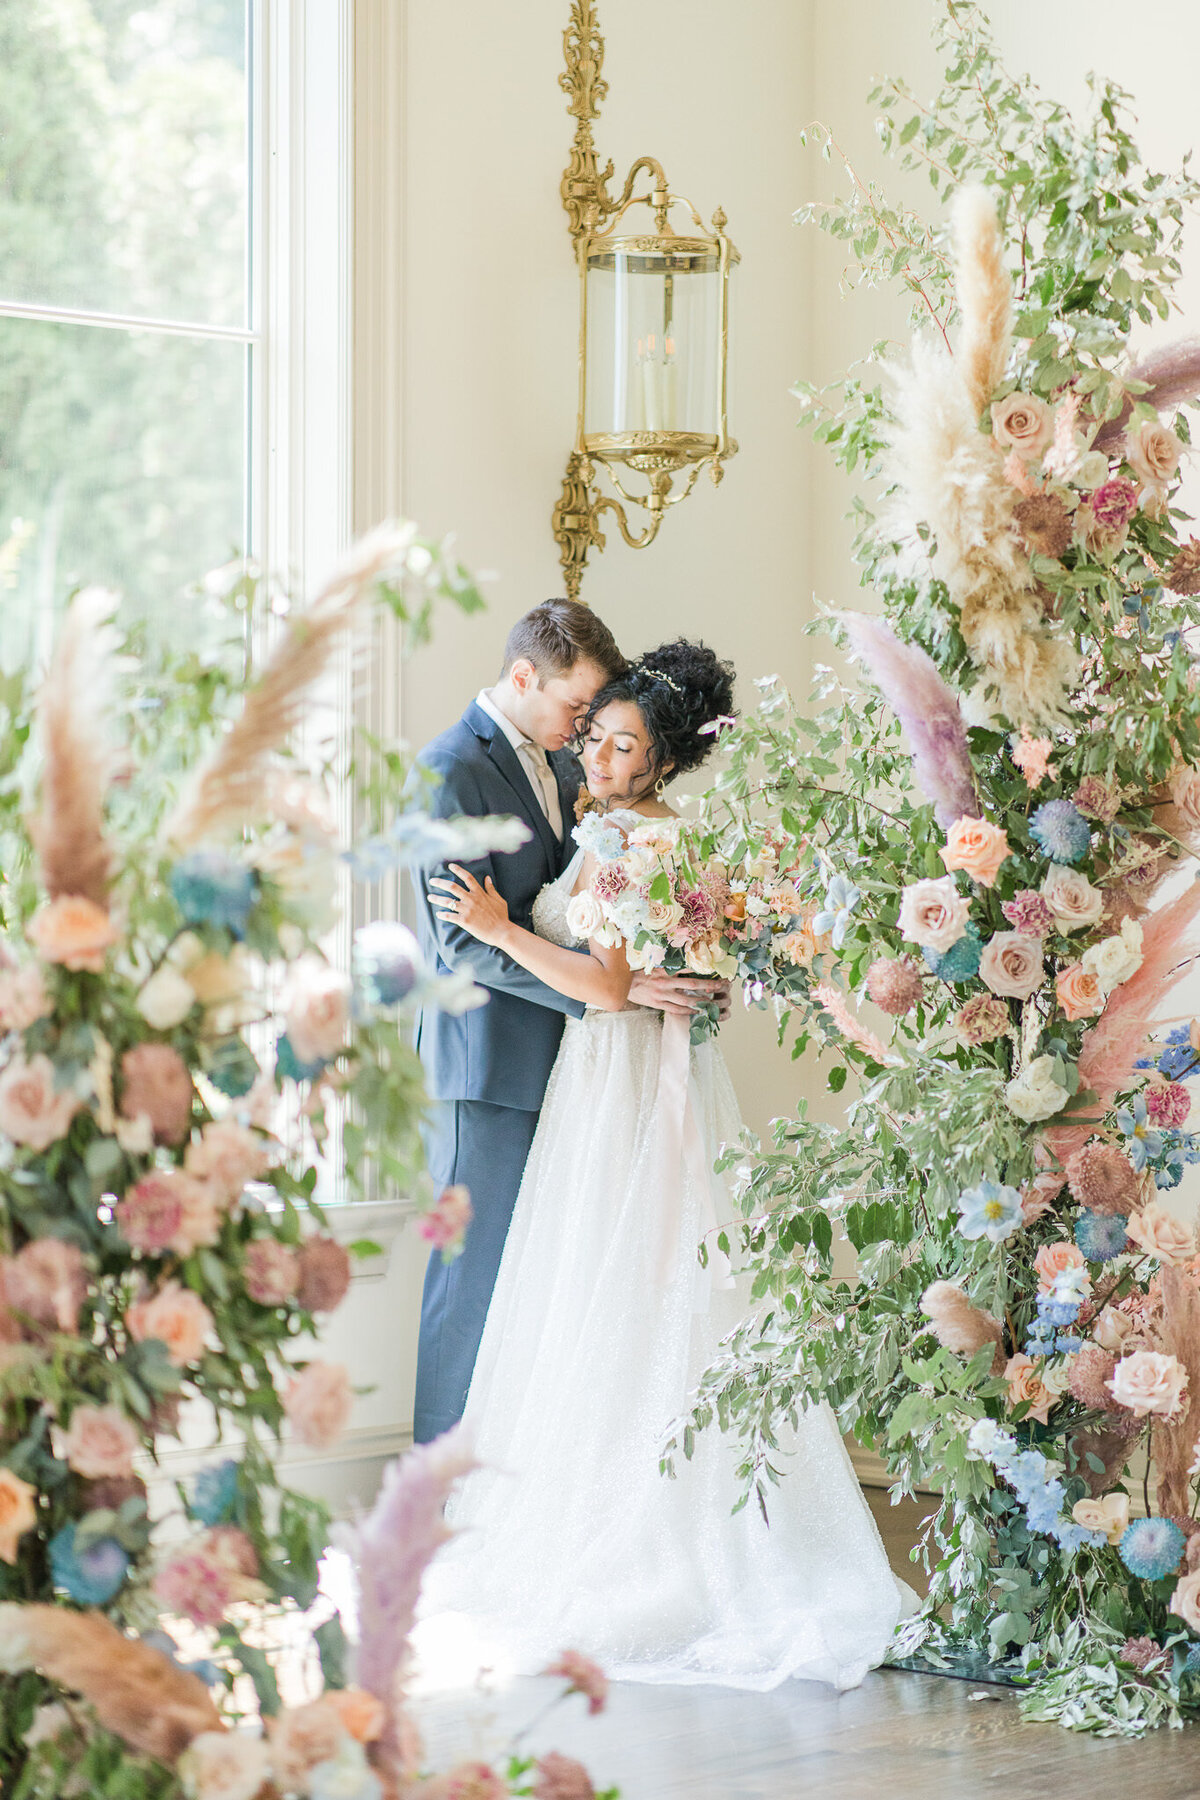 Pastel__Inspired_Wedding_in_the_Chapel_at_the_Park_Chateau_Estate_and_Gardens_in_East_Brunswick-12